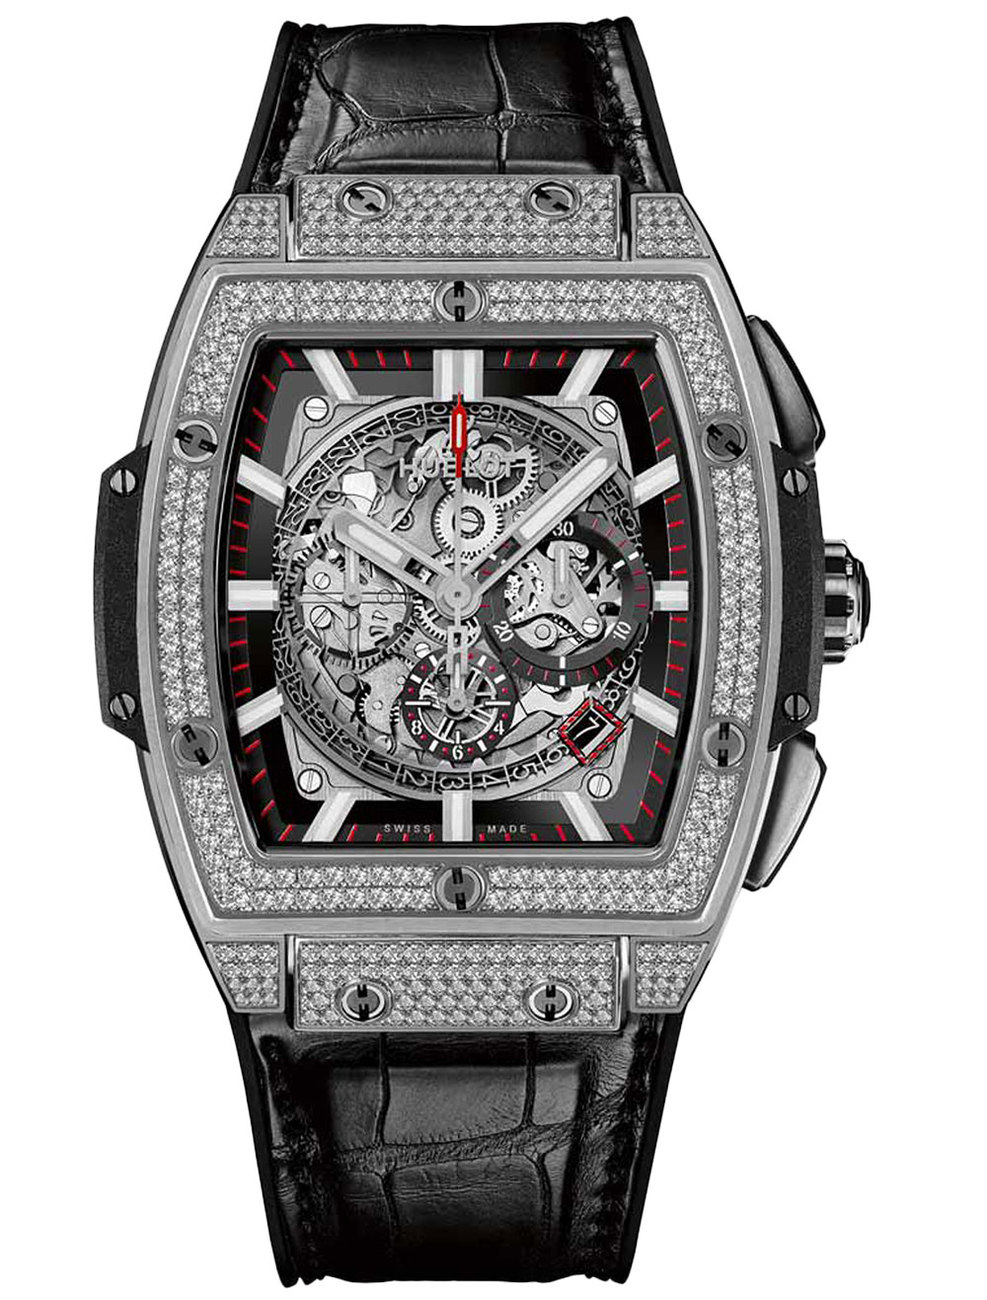 HUBLOT SPIRIT OF BIG BANG 601.NX.0173.LR.1704